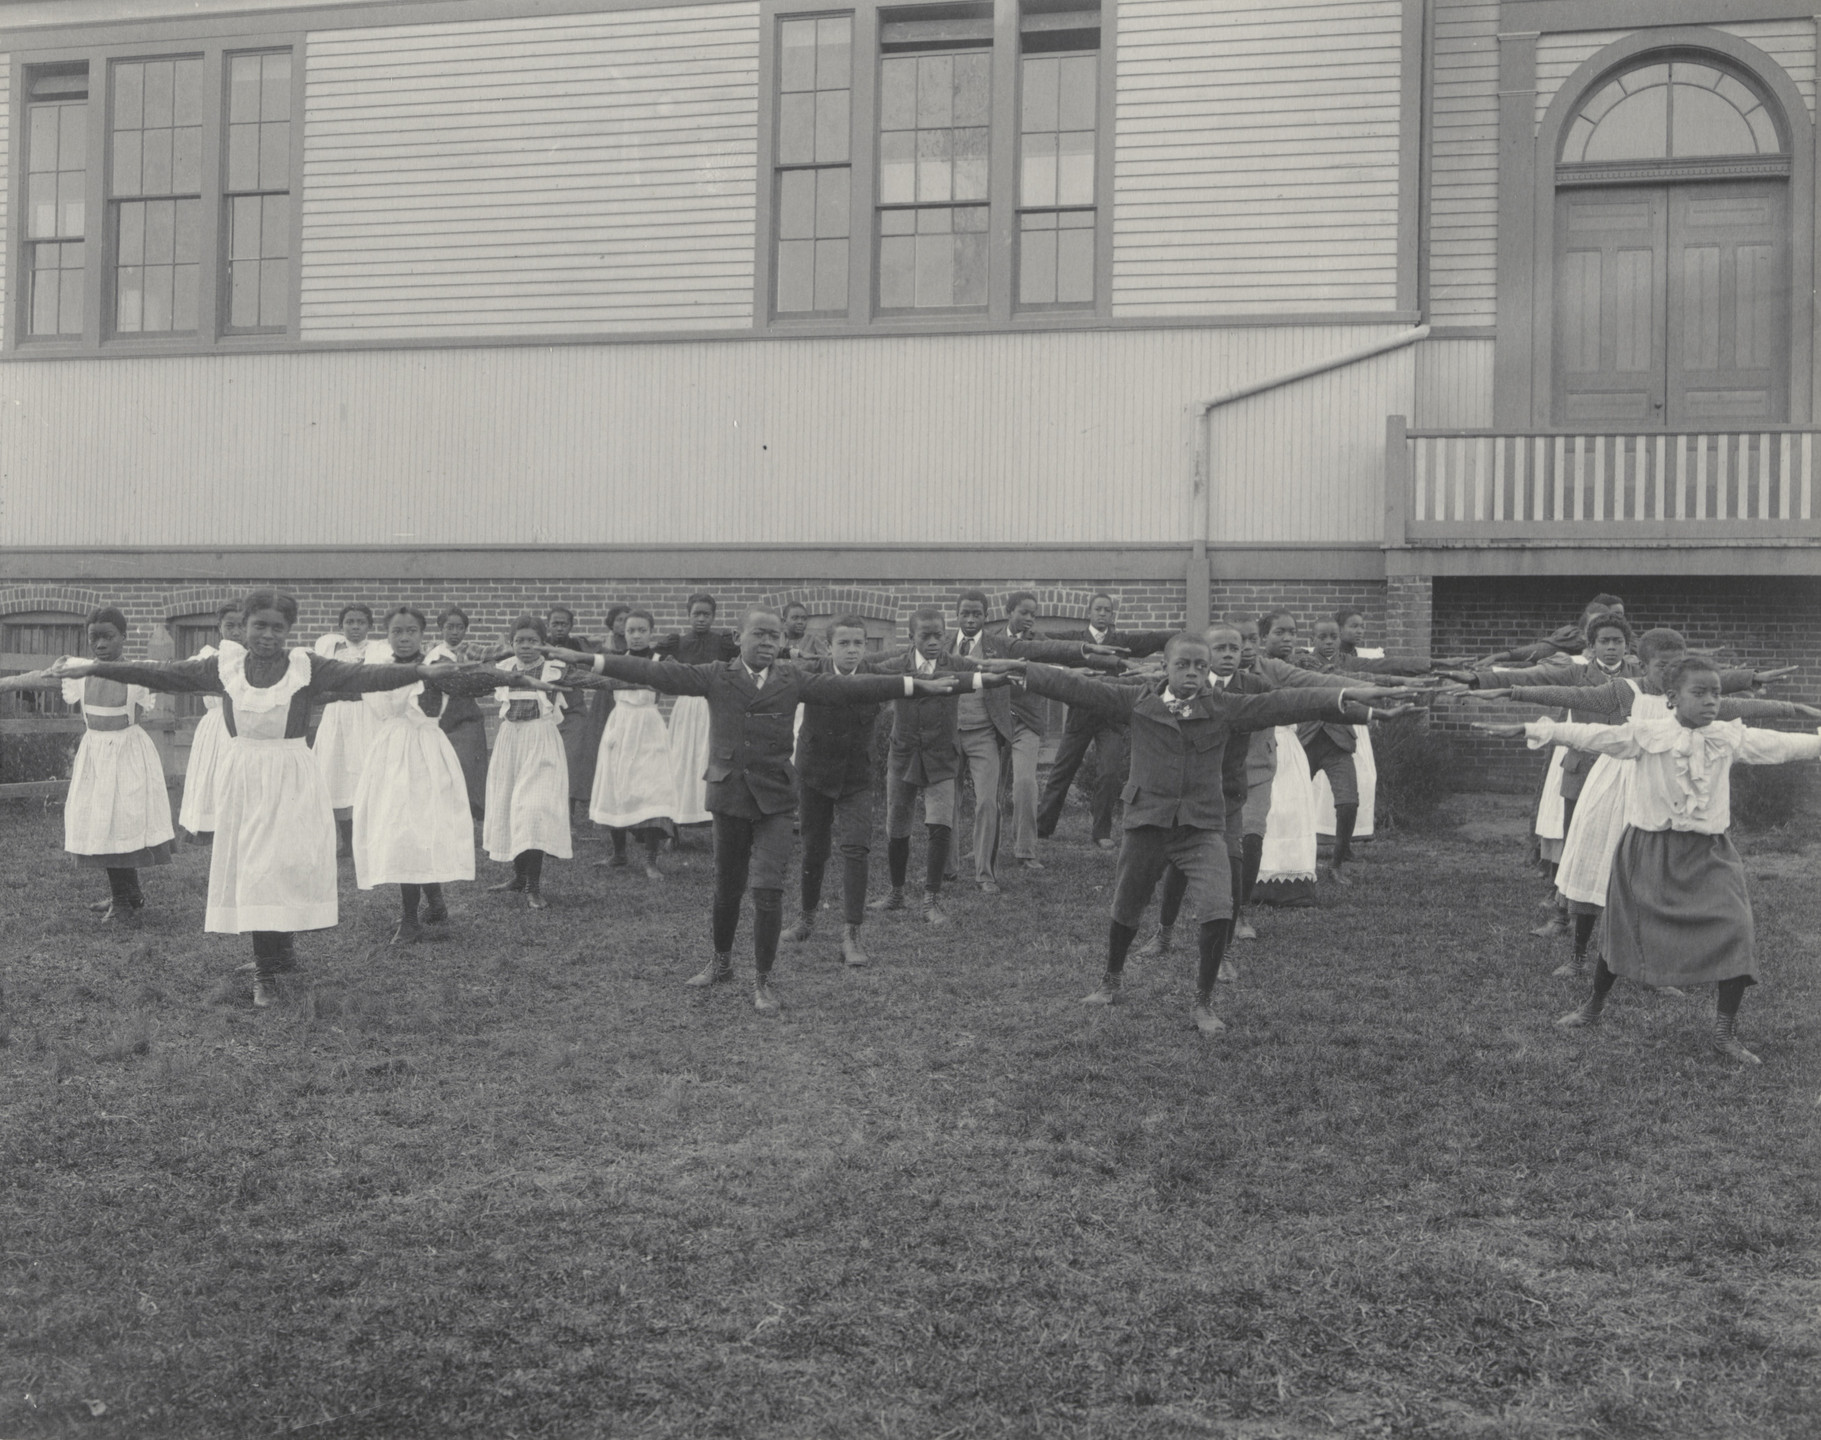 Frances Benjamin Johnston. Gymnastics at the Whittier. 1899-1900